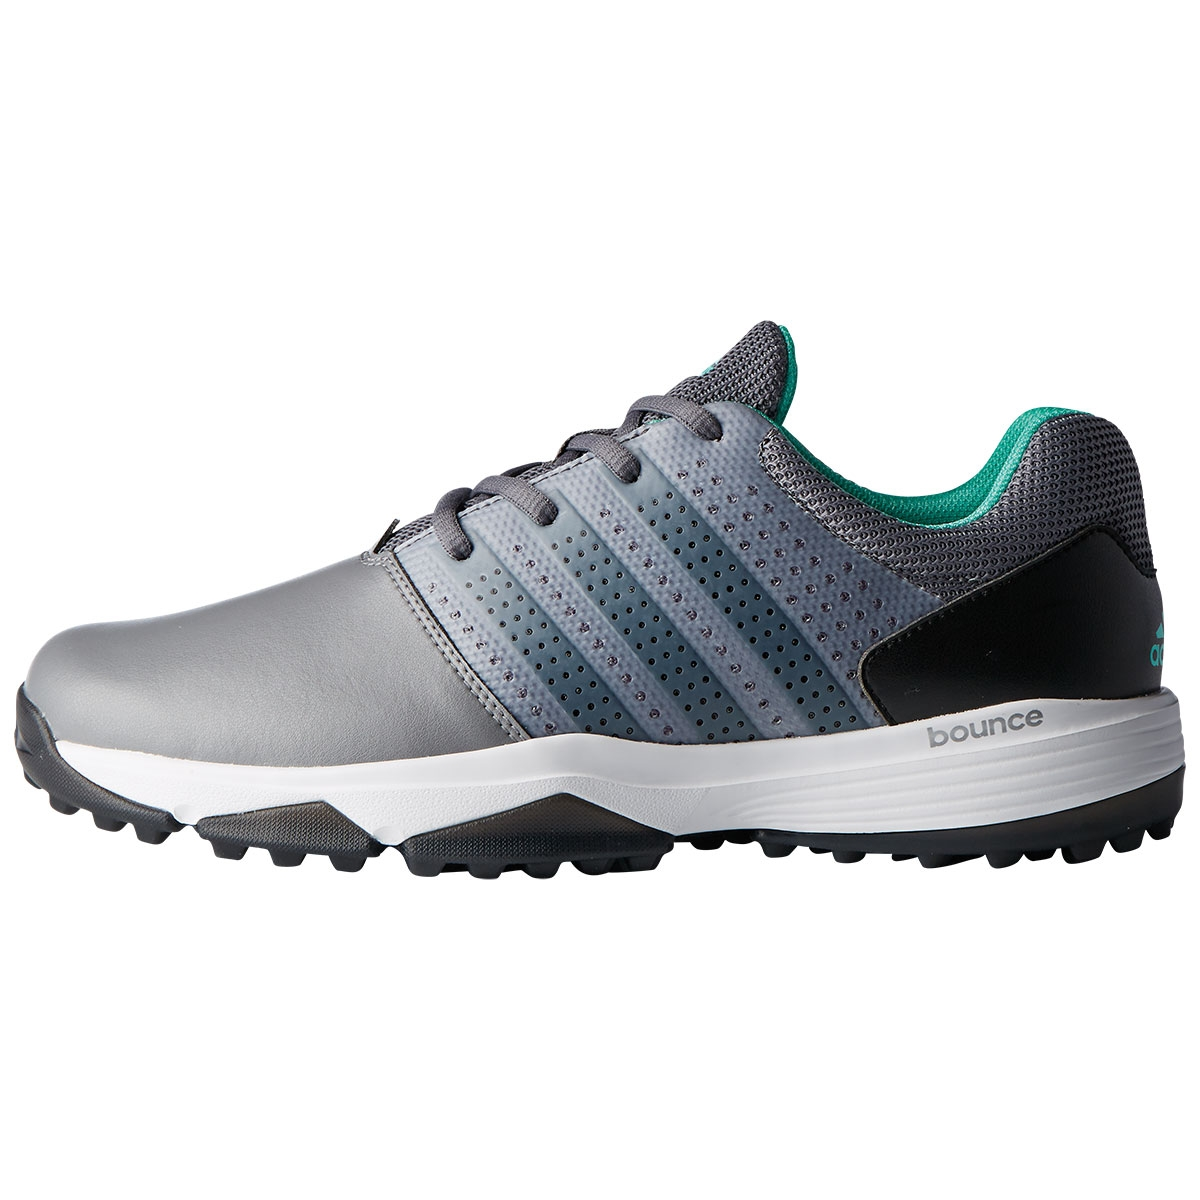 Adidas Mens 360 Traxion Spikeless Golf Shoe - Grey